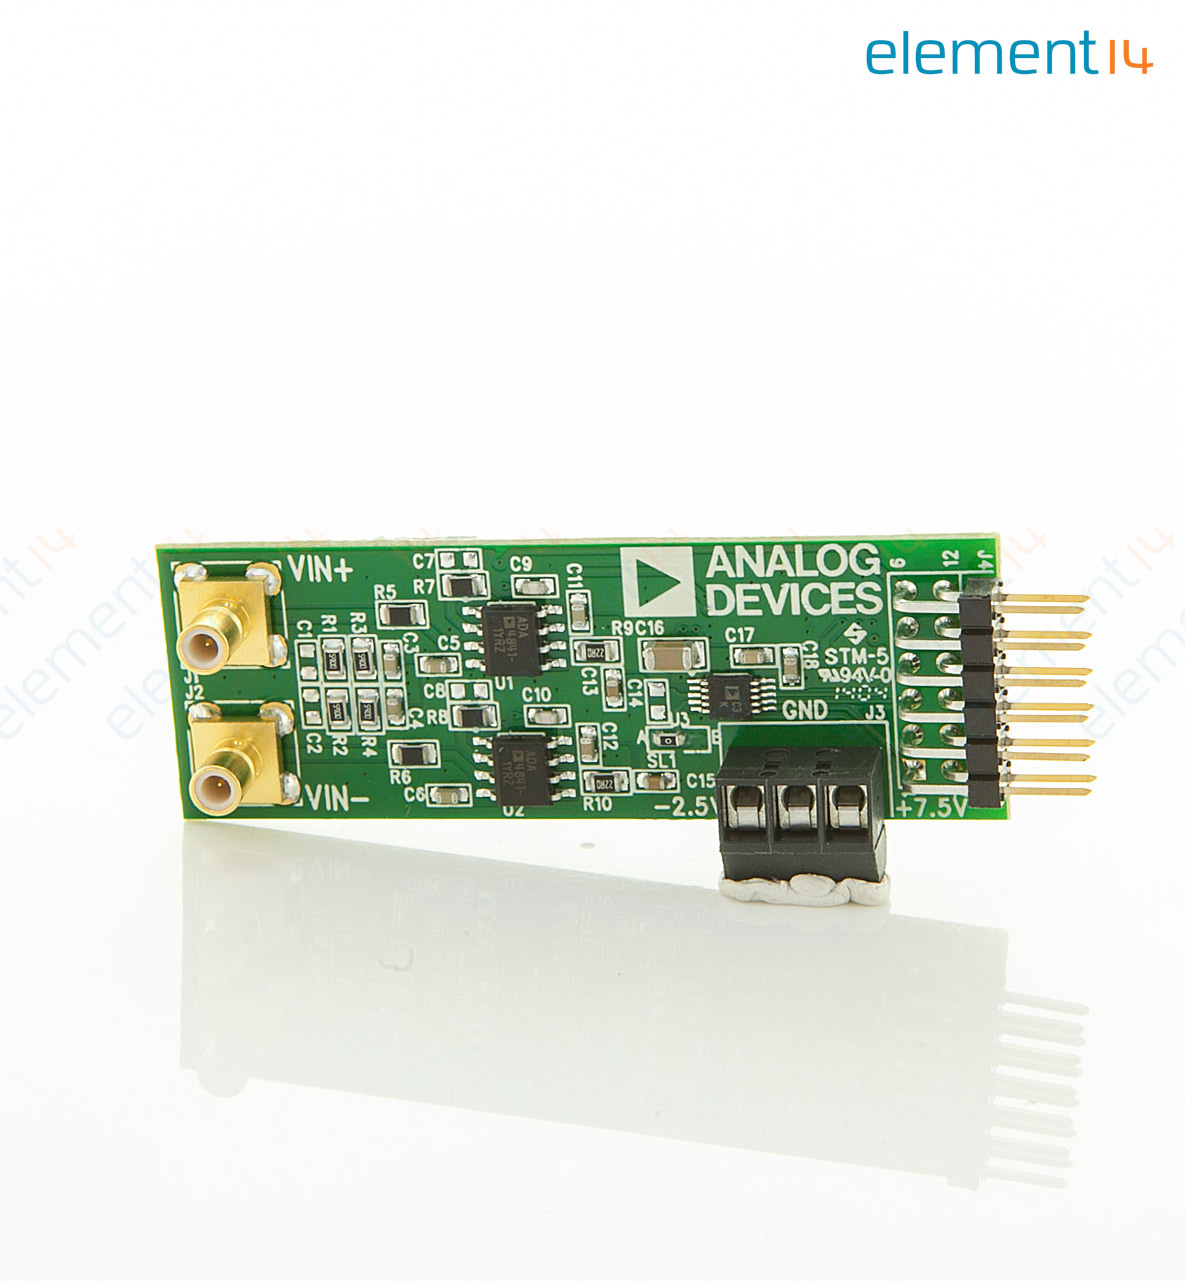 Eval Ad7688 Pmdz Analog Devices Evaluation Module 16bit 500ksps Electronics Learning Circuits Webonly Products Technology Add To Compare